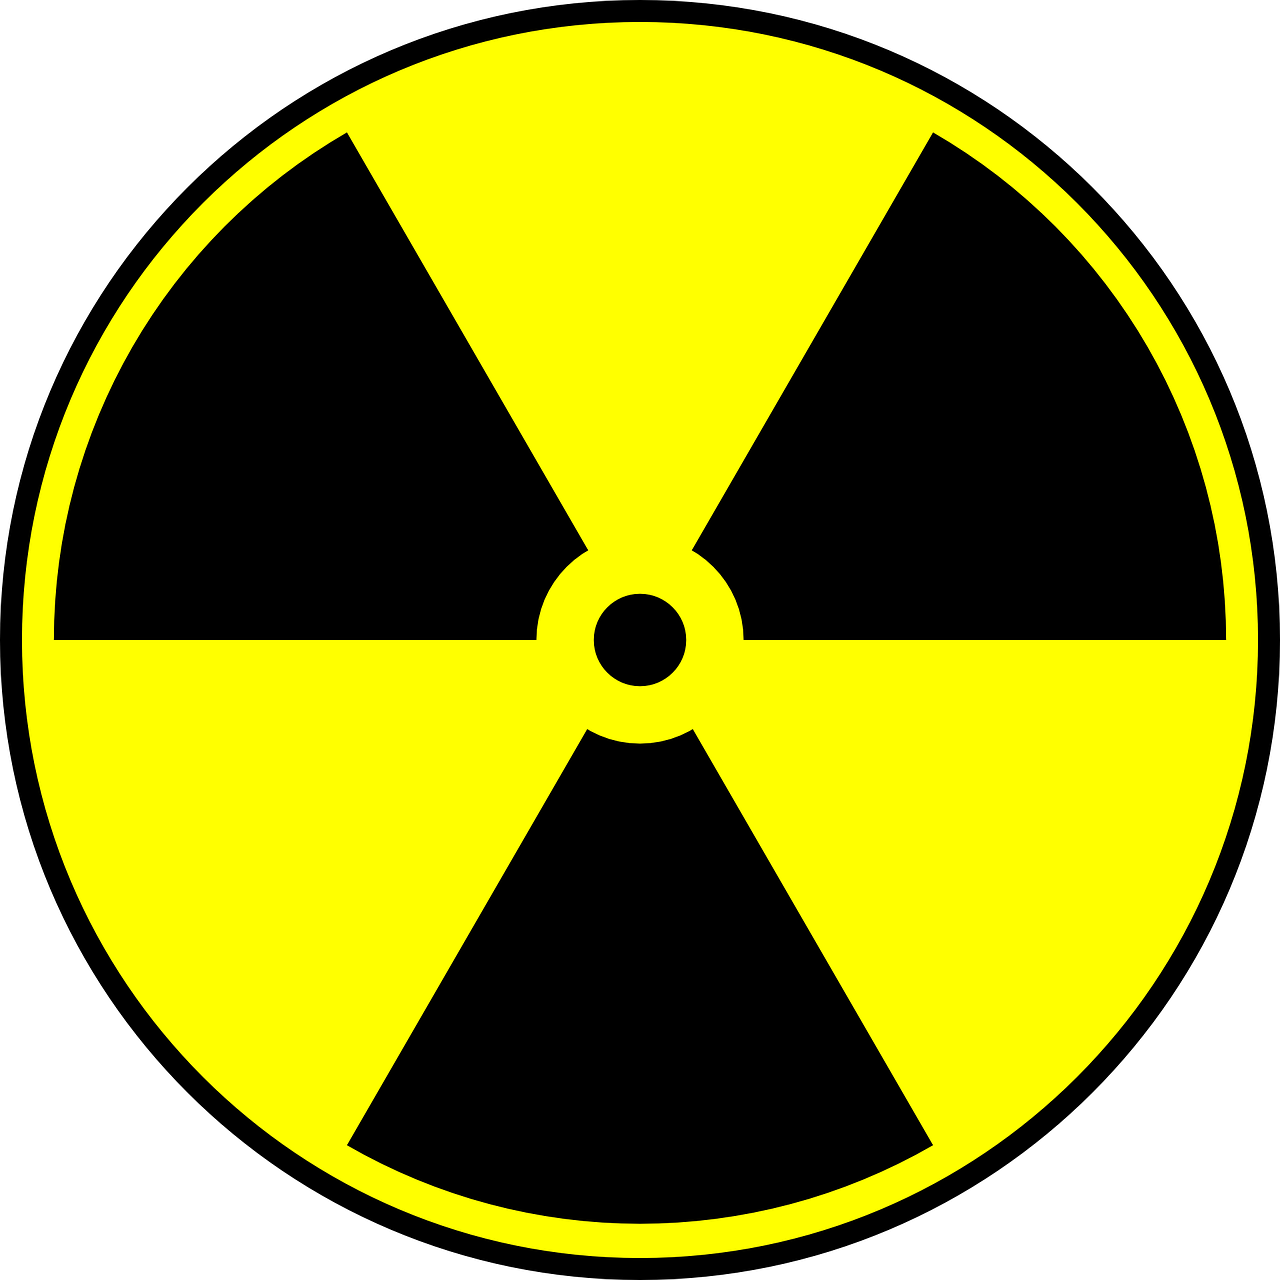 Proposals Invited for Phase 6 of UK-Japan Civil Nuclear Research Programme